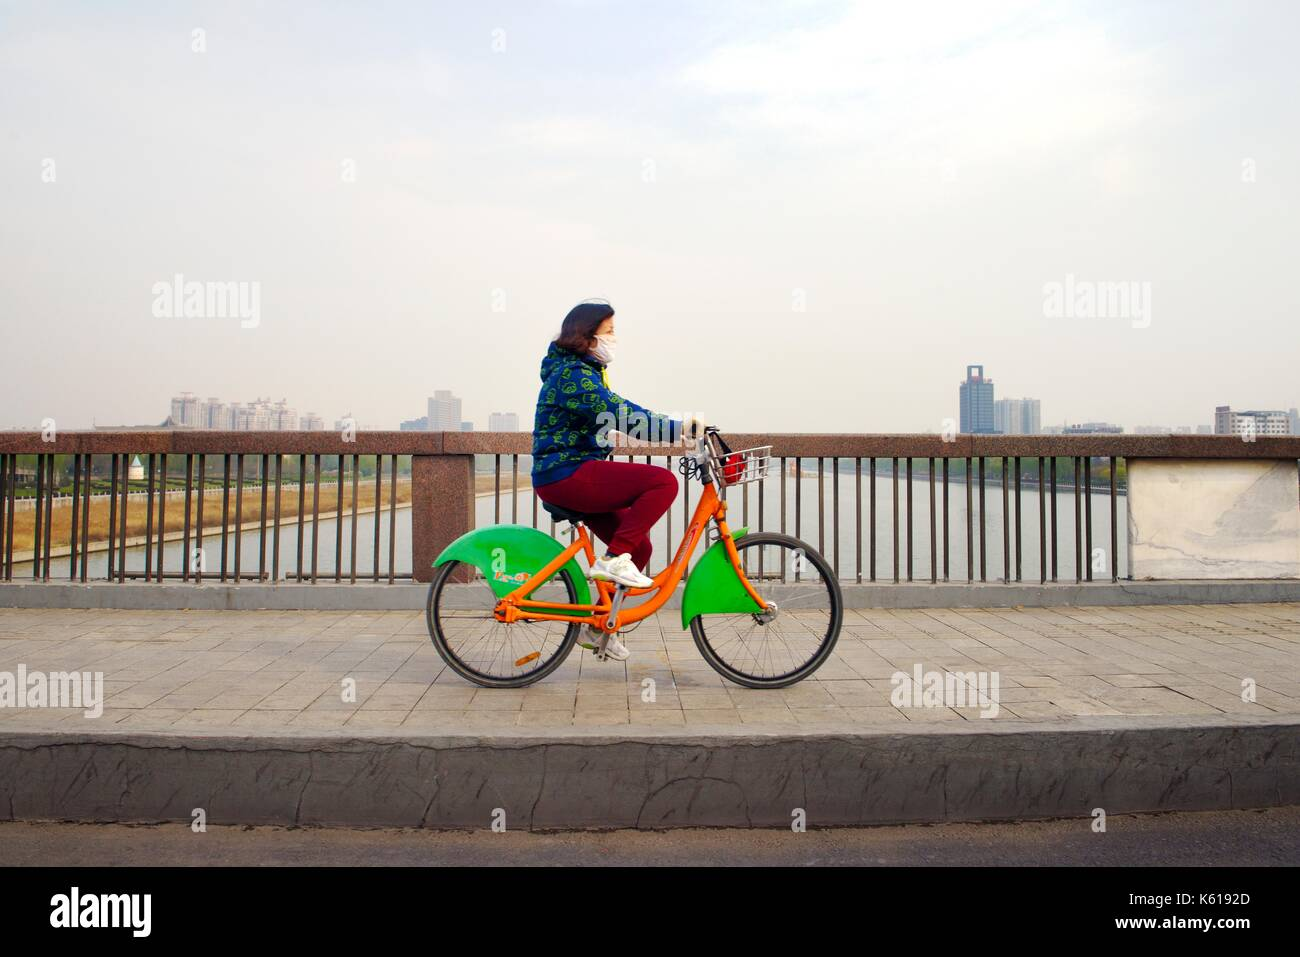 City of Taiyuan, Shanxi, China. Young woman wearing air pollution mask rides city community bike share cycle over the Fen River - Stock Image